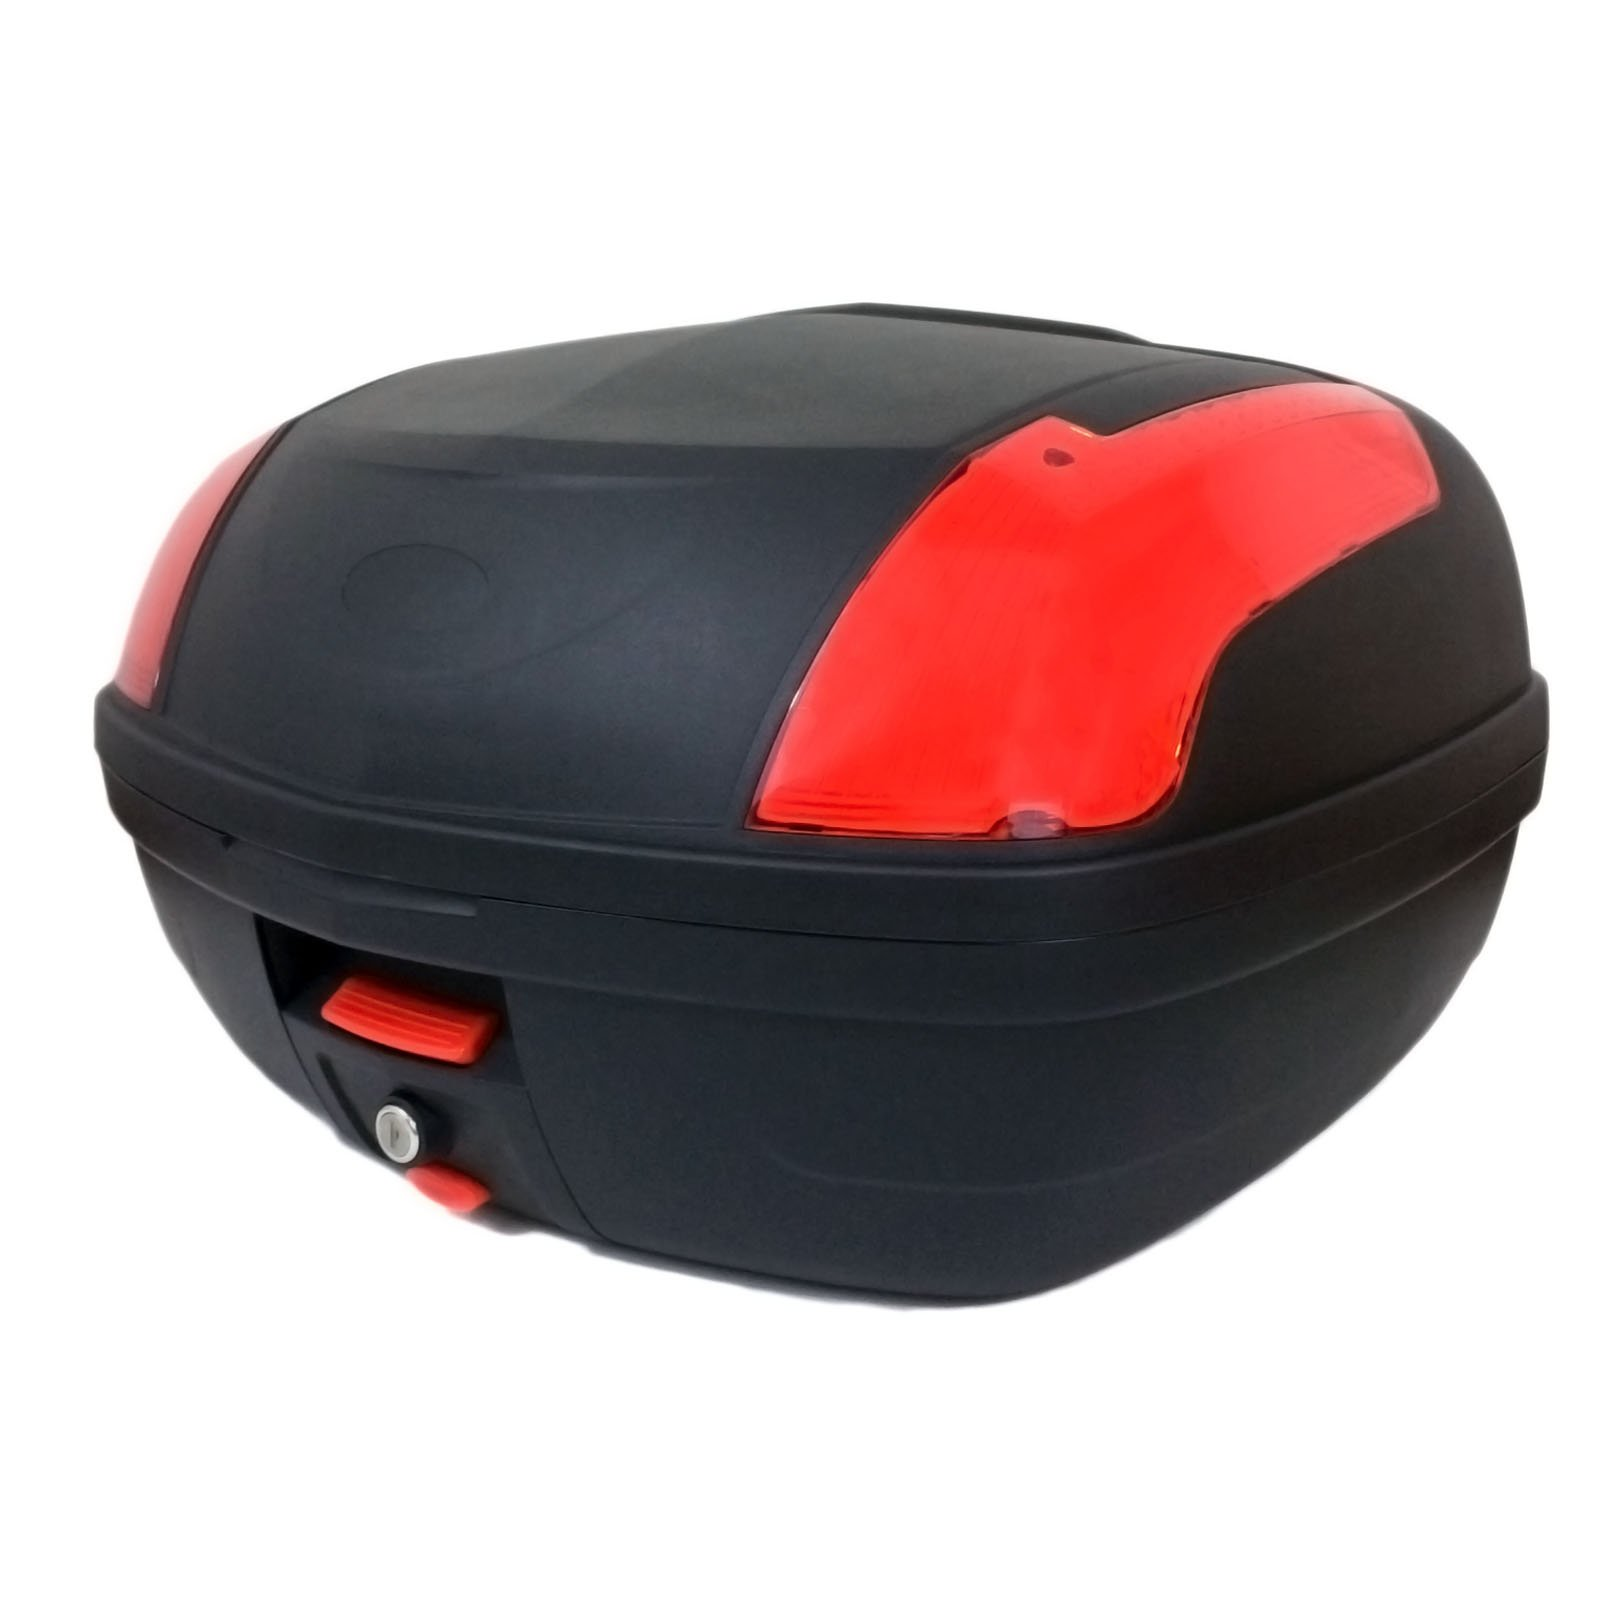 Motorcycle Touring LARGE Top Box Tail Trunk Luggage Box - 46 Lt Capacity - Can Store two (2) Helmet HARD CASE (889)